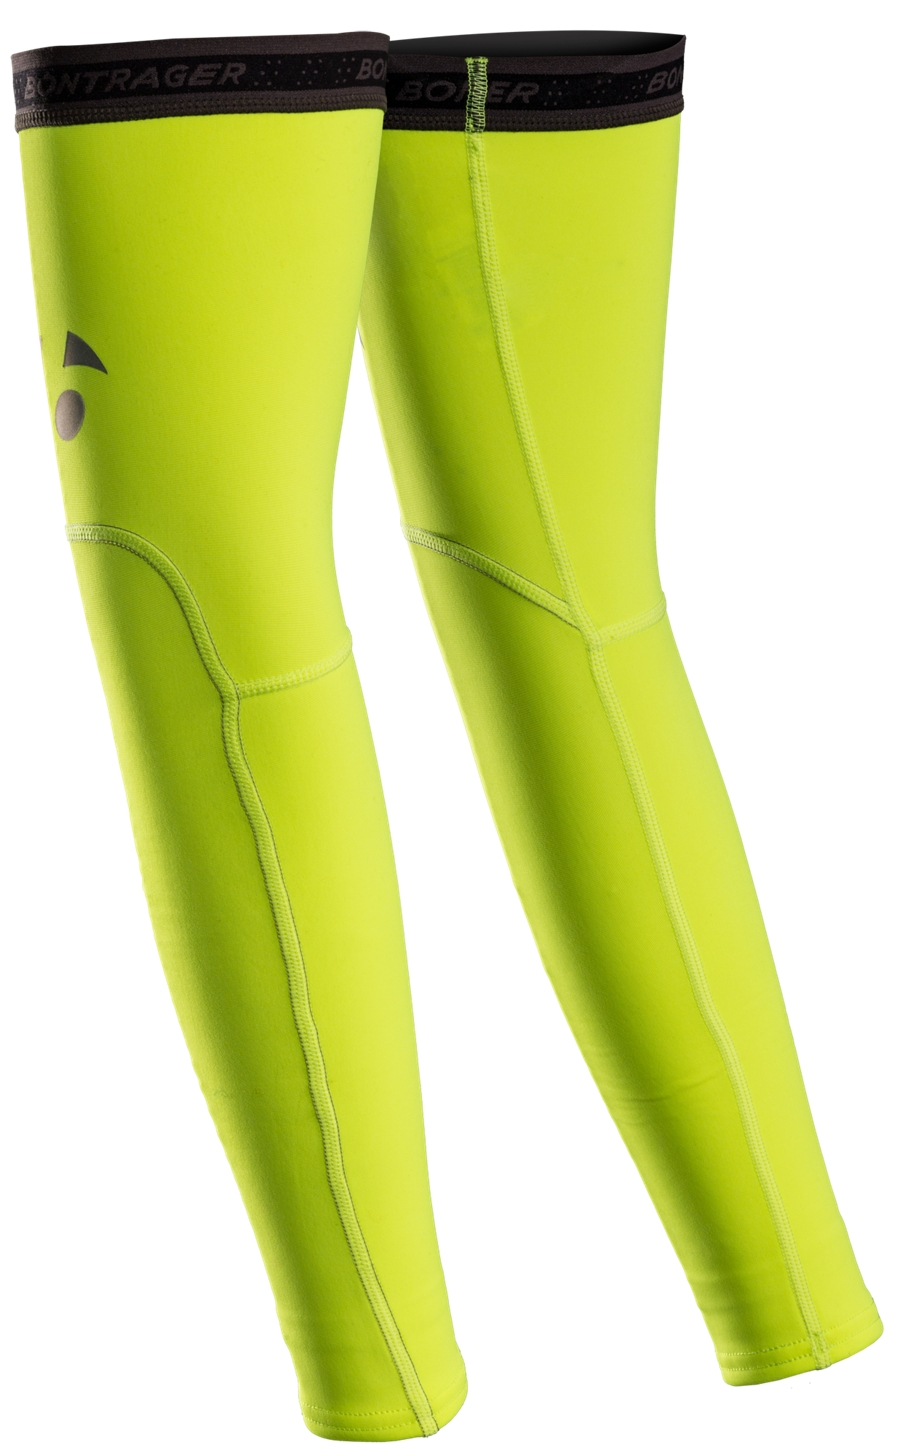 Bontrager Armling Thermal Arm XL Visibility Yellow - Bontrager Armling Thermal Arm XL Visibility Yellow